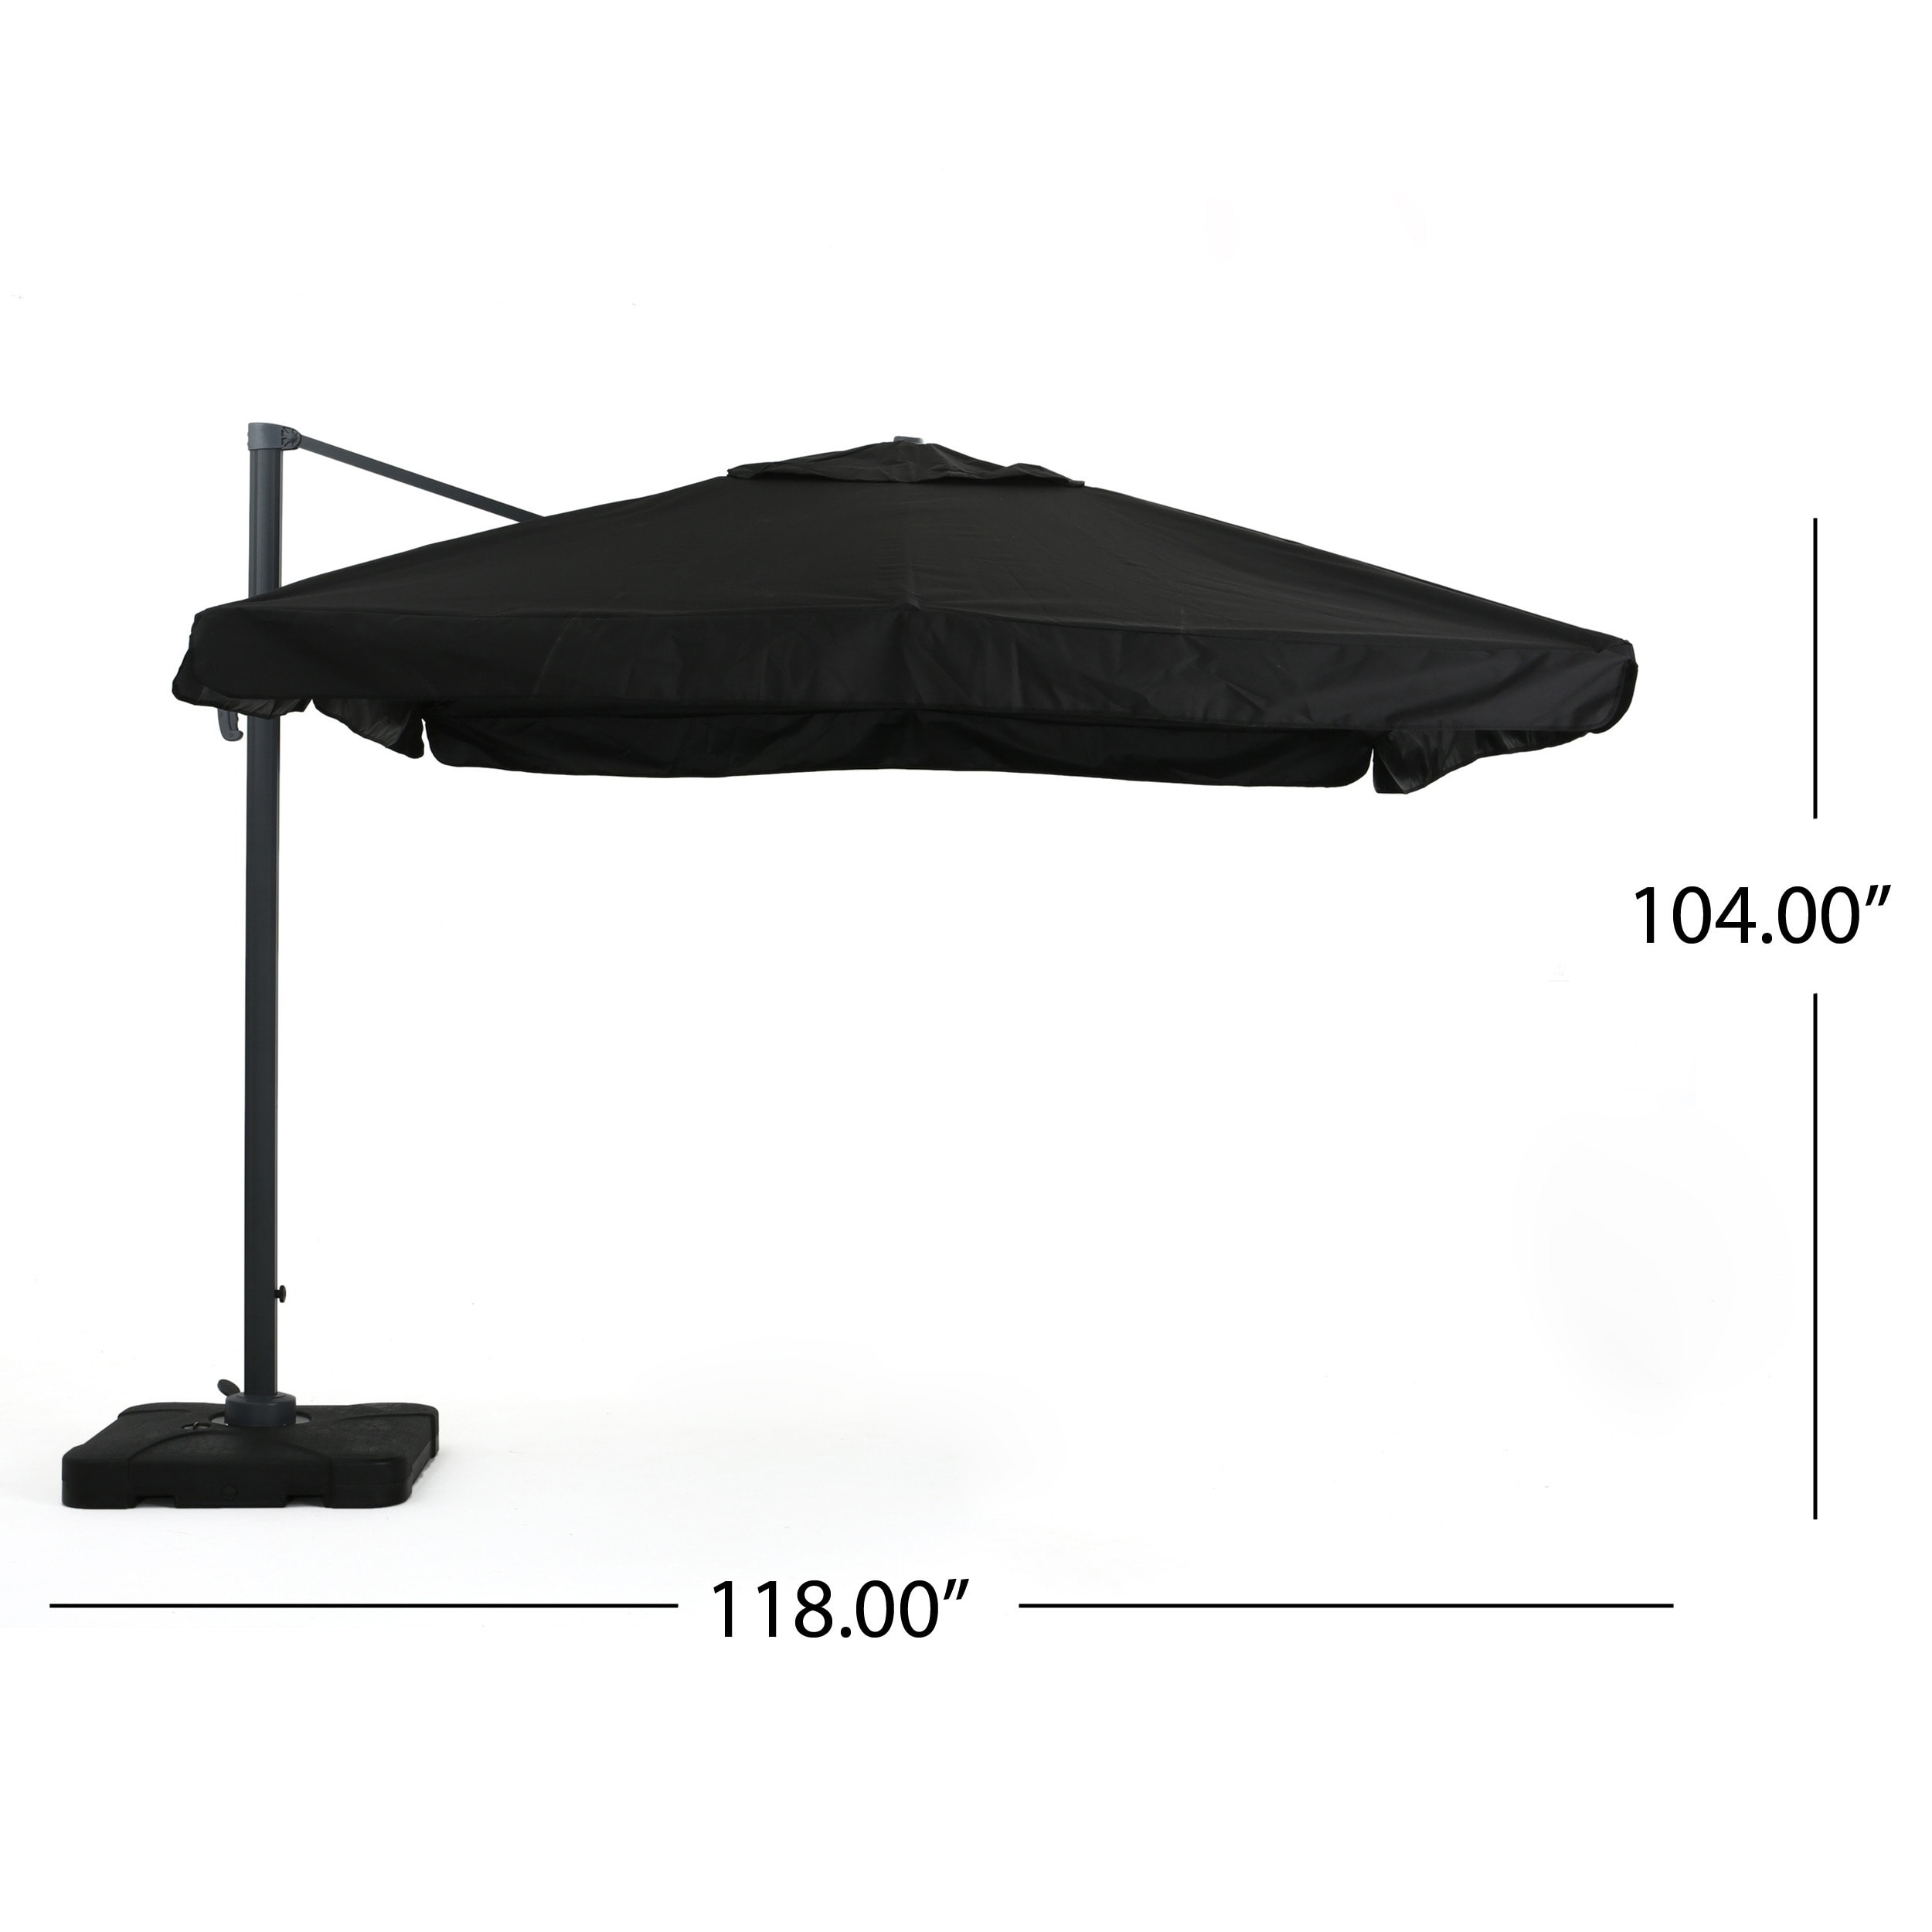 Outdoor Merida 9.8-foot Canopy Umbrella with Base by Christopher Knight Home - Free Shipping Today - Overstock.com - 17665260  sc 1 st  Overstock.com & Outdoor Merida 9.8-foot Canopy Umbrella with Base by Christopher ...